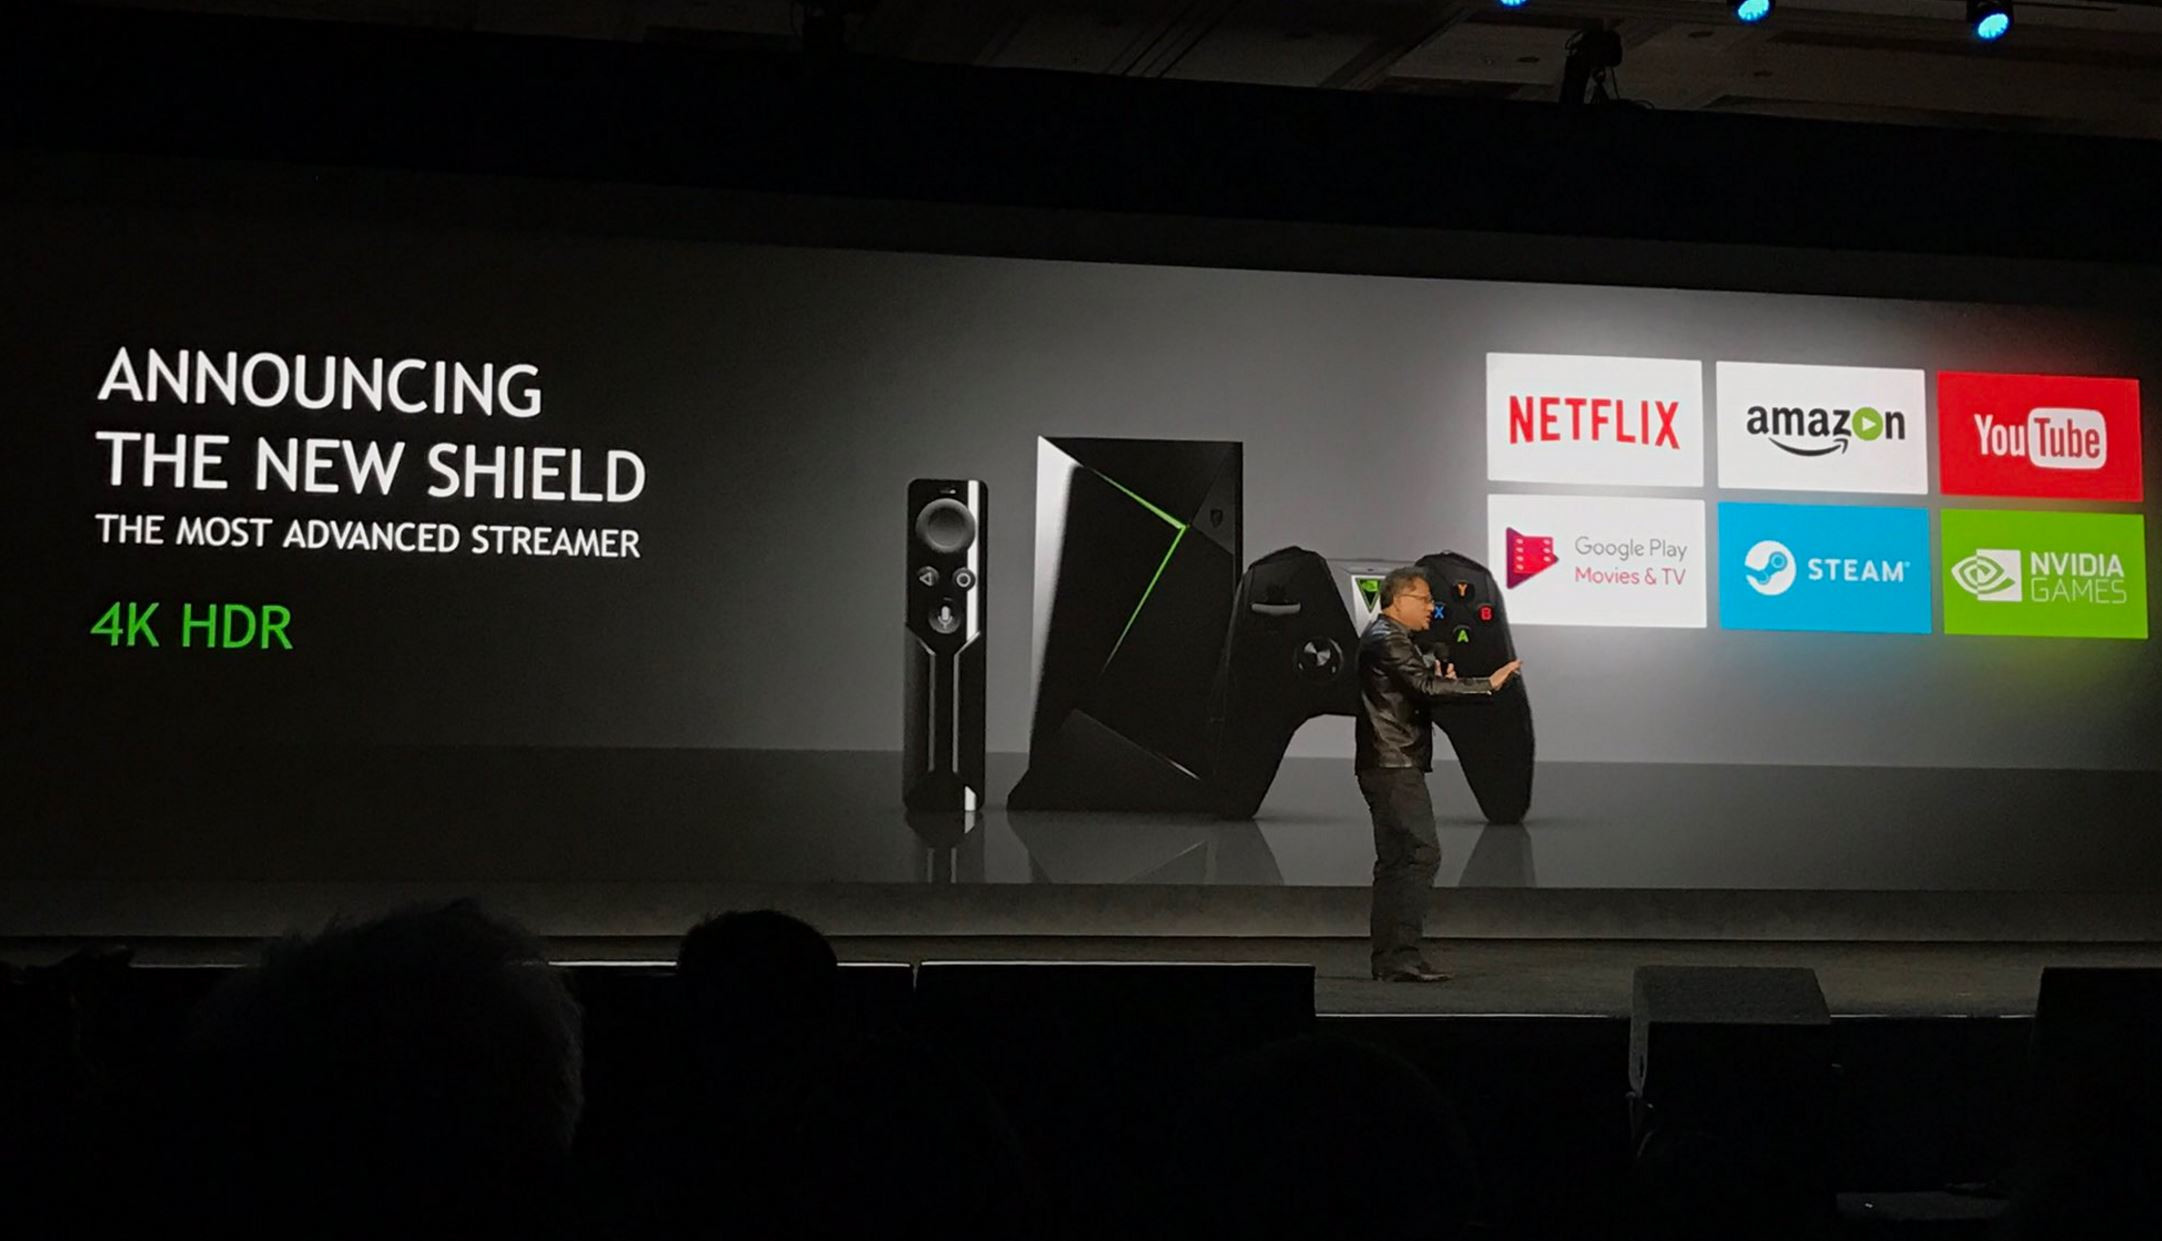 NVIDIA Announces the 2017 Shield with 4K HDR Capability